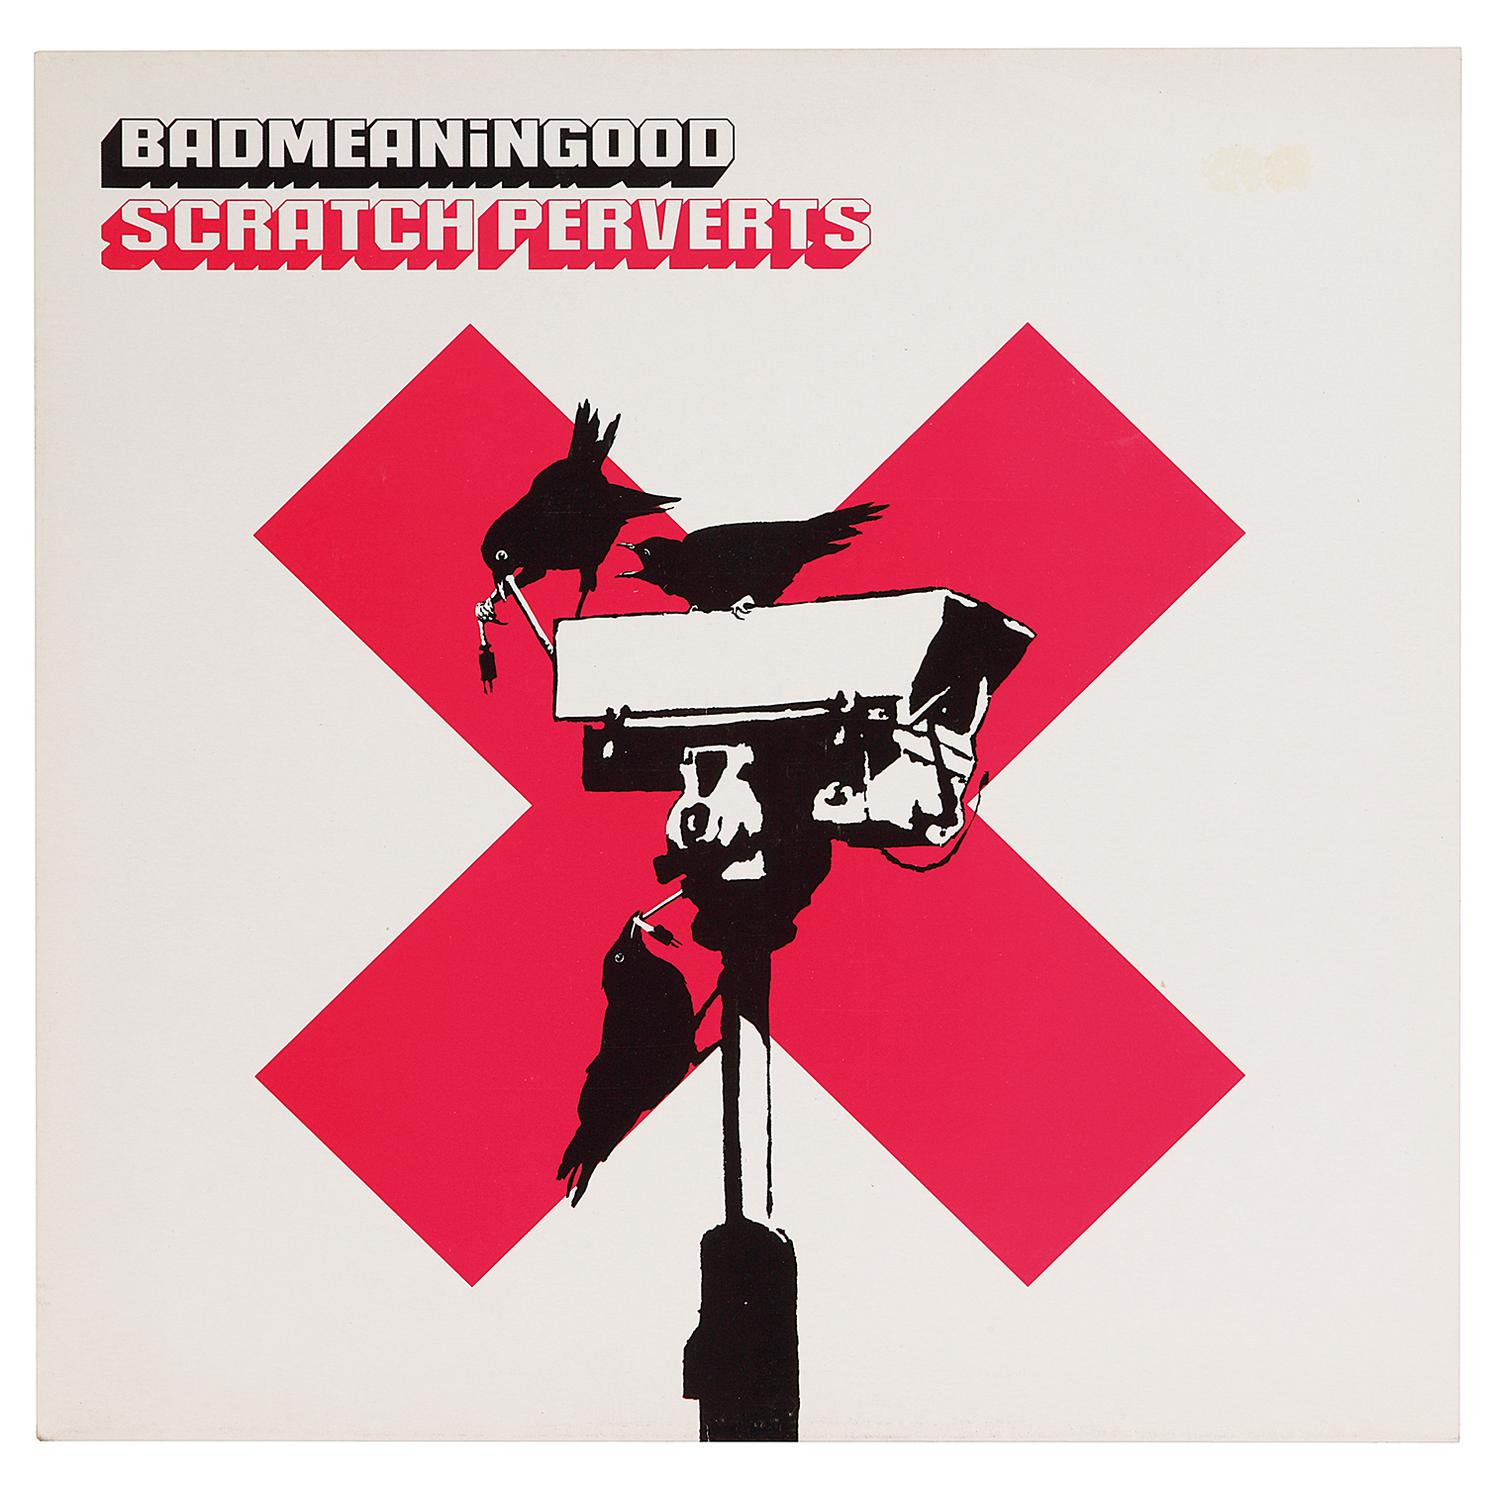 Banksy-Badmeaningood Vol.4 Selection By Scratch Perverts-2003